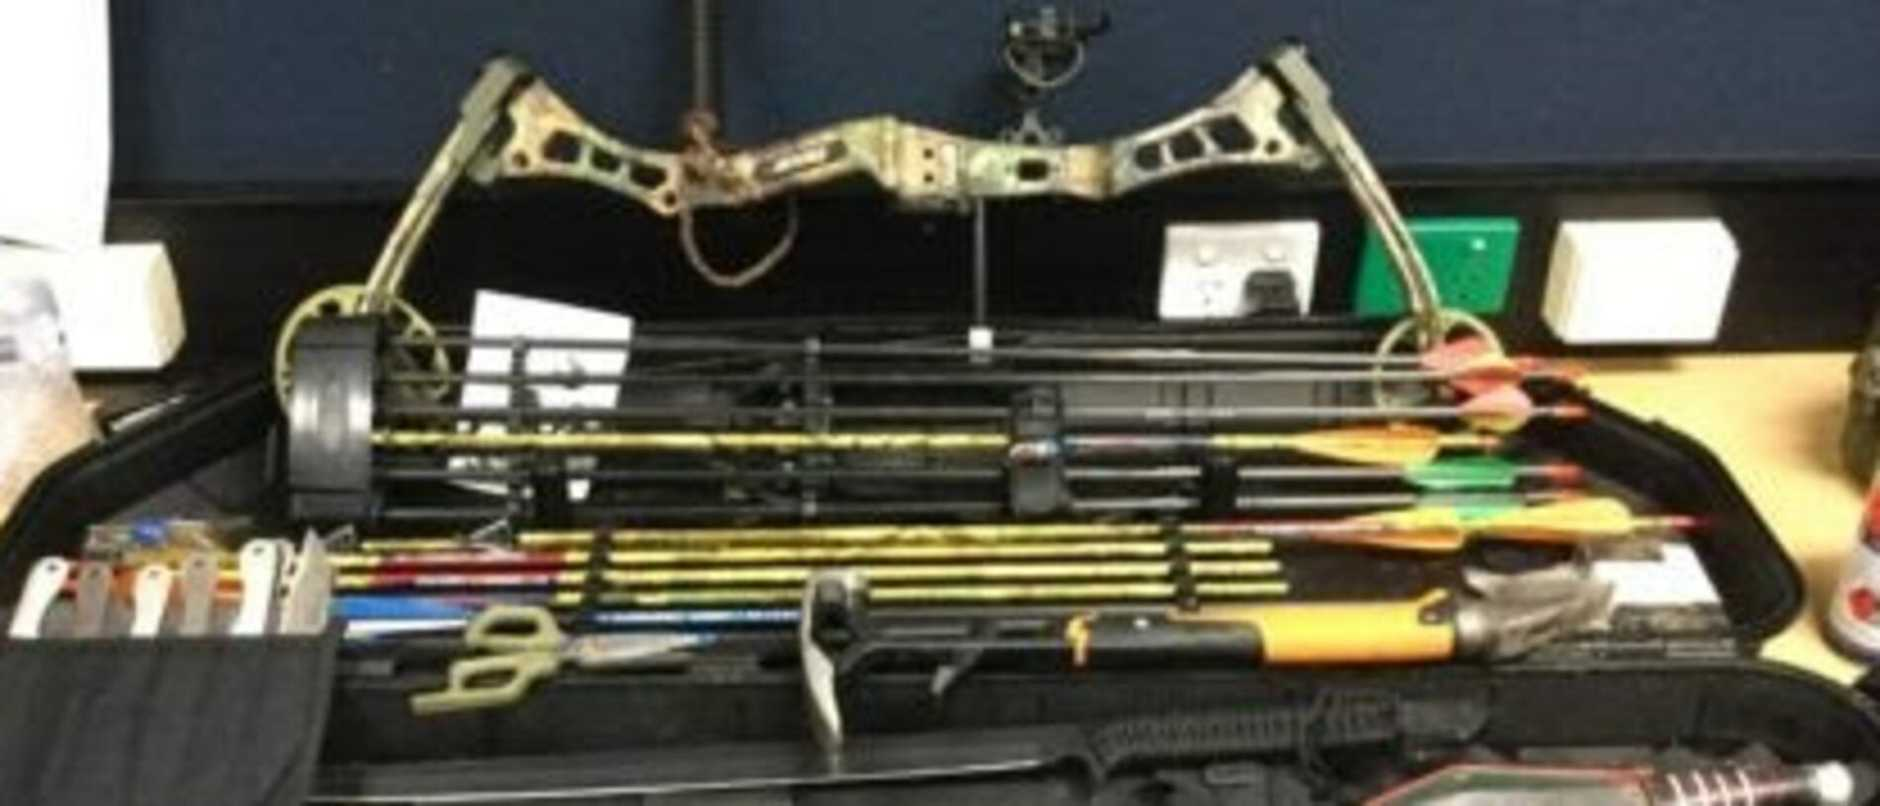 A man has been charged after allegedly being found with a cache of weapons.